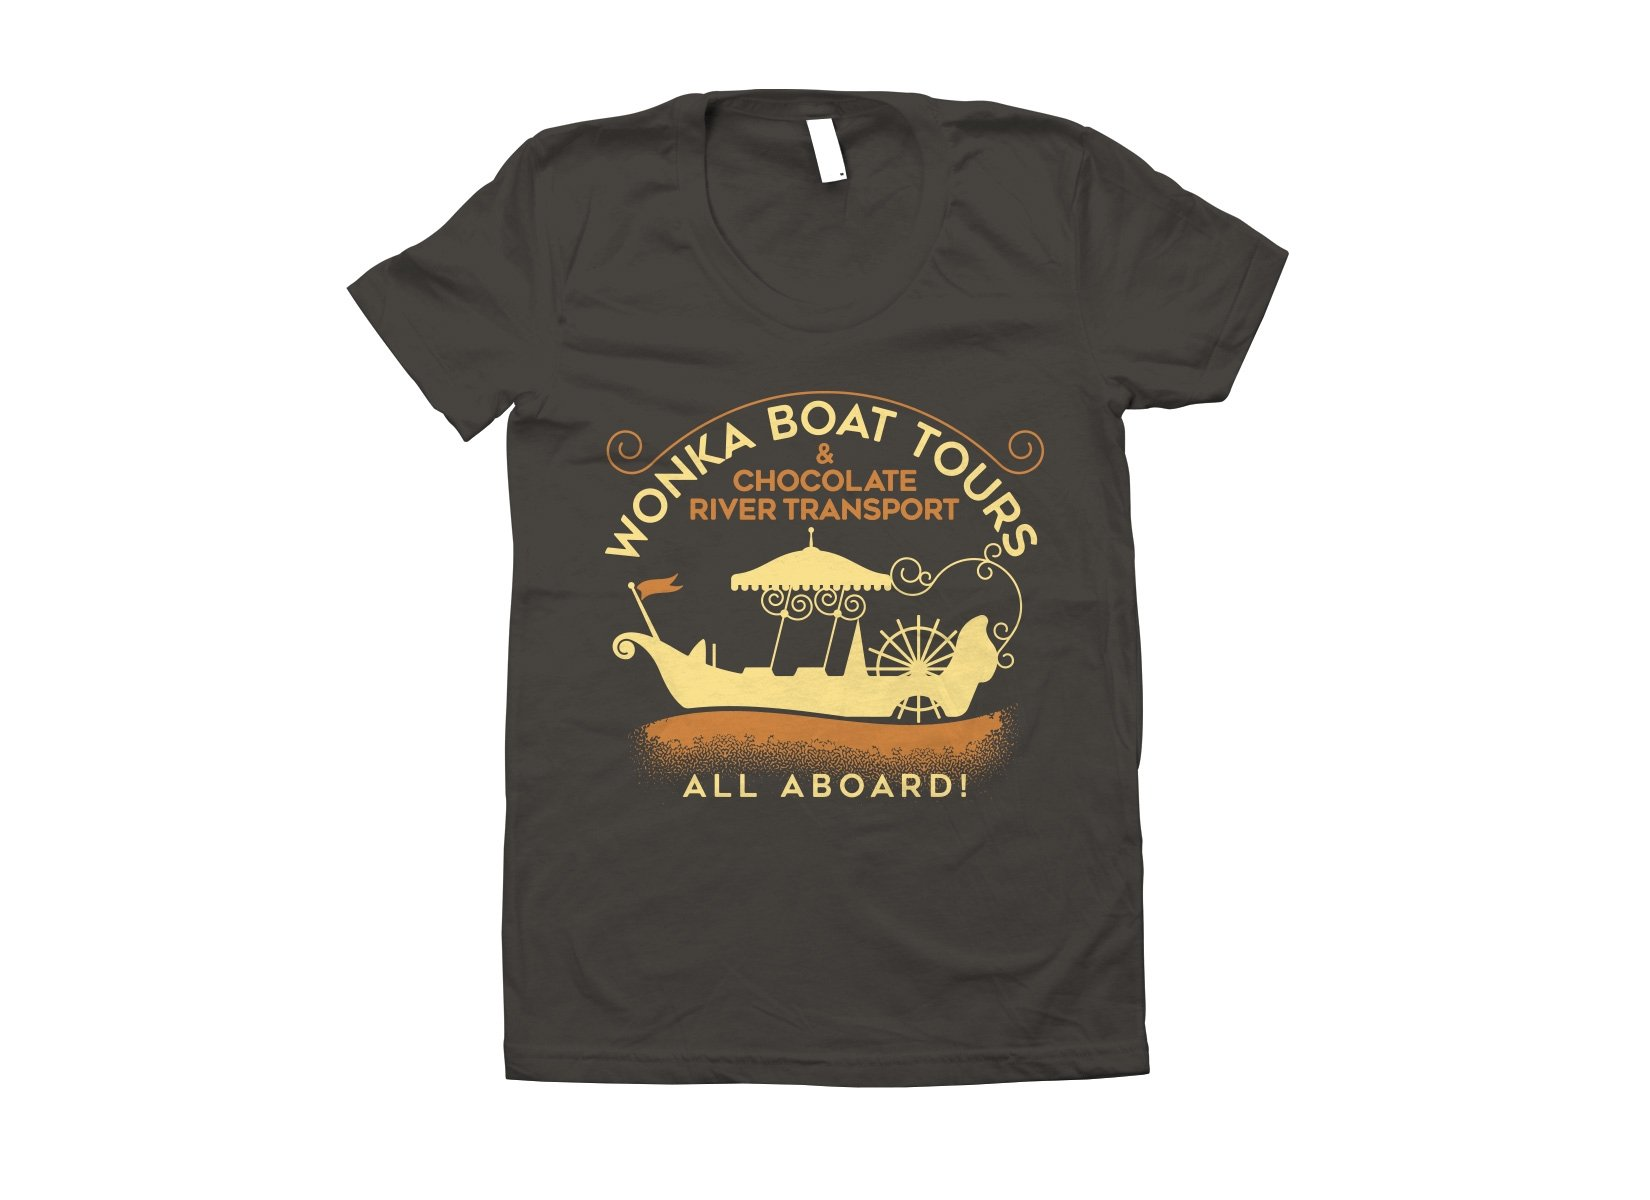 Wonka Boat Tours on Juniors T-Shirt